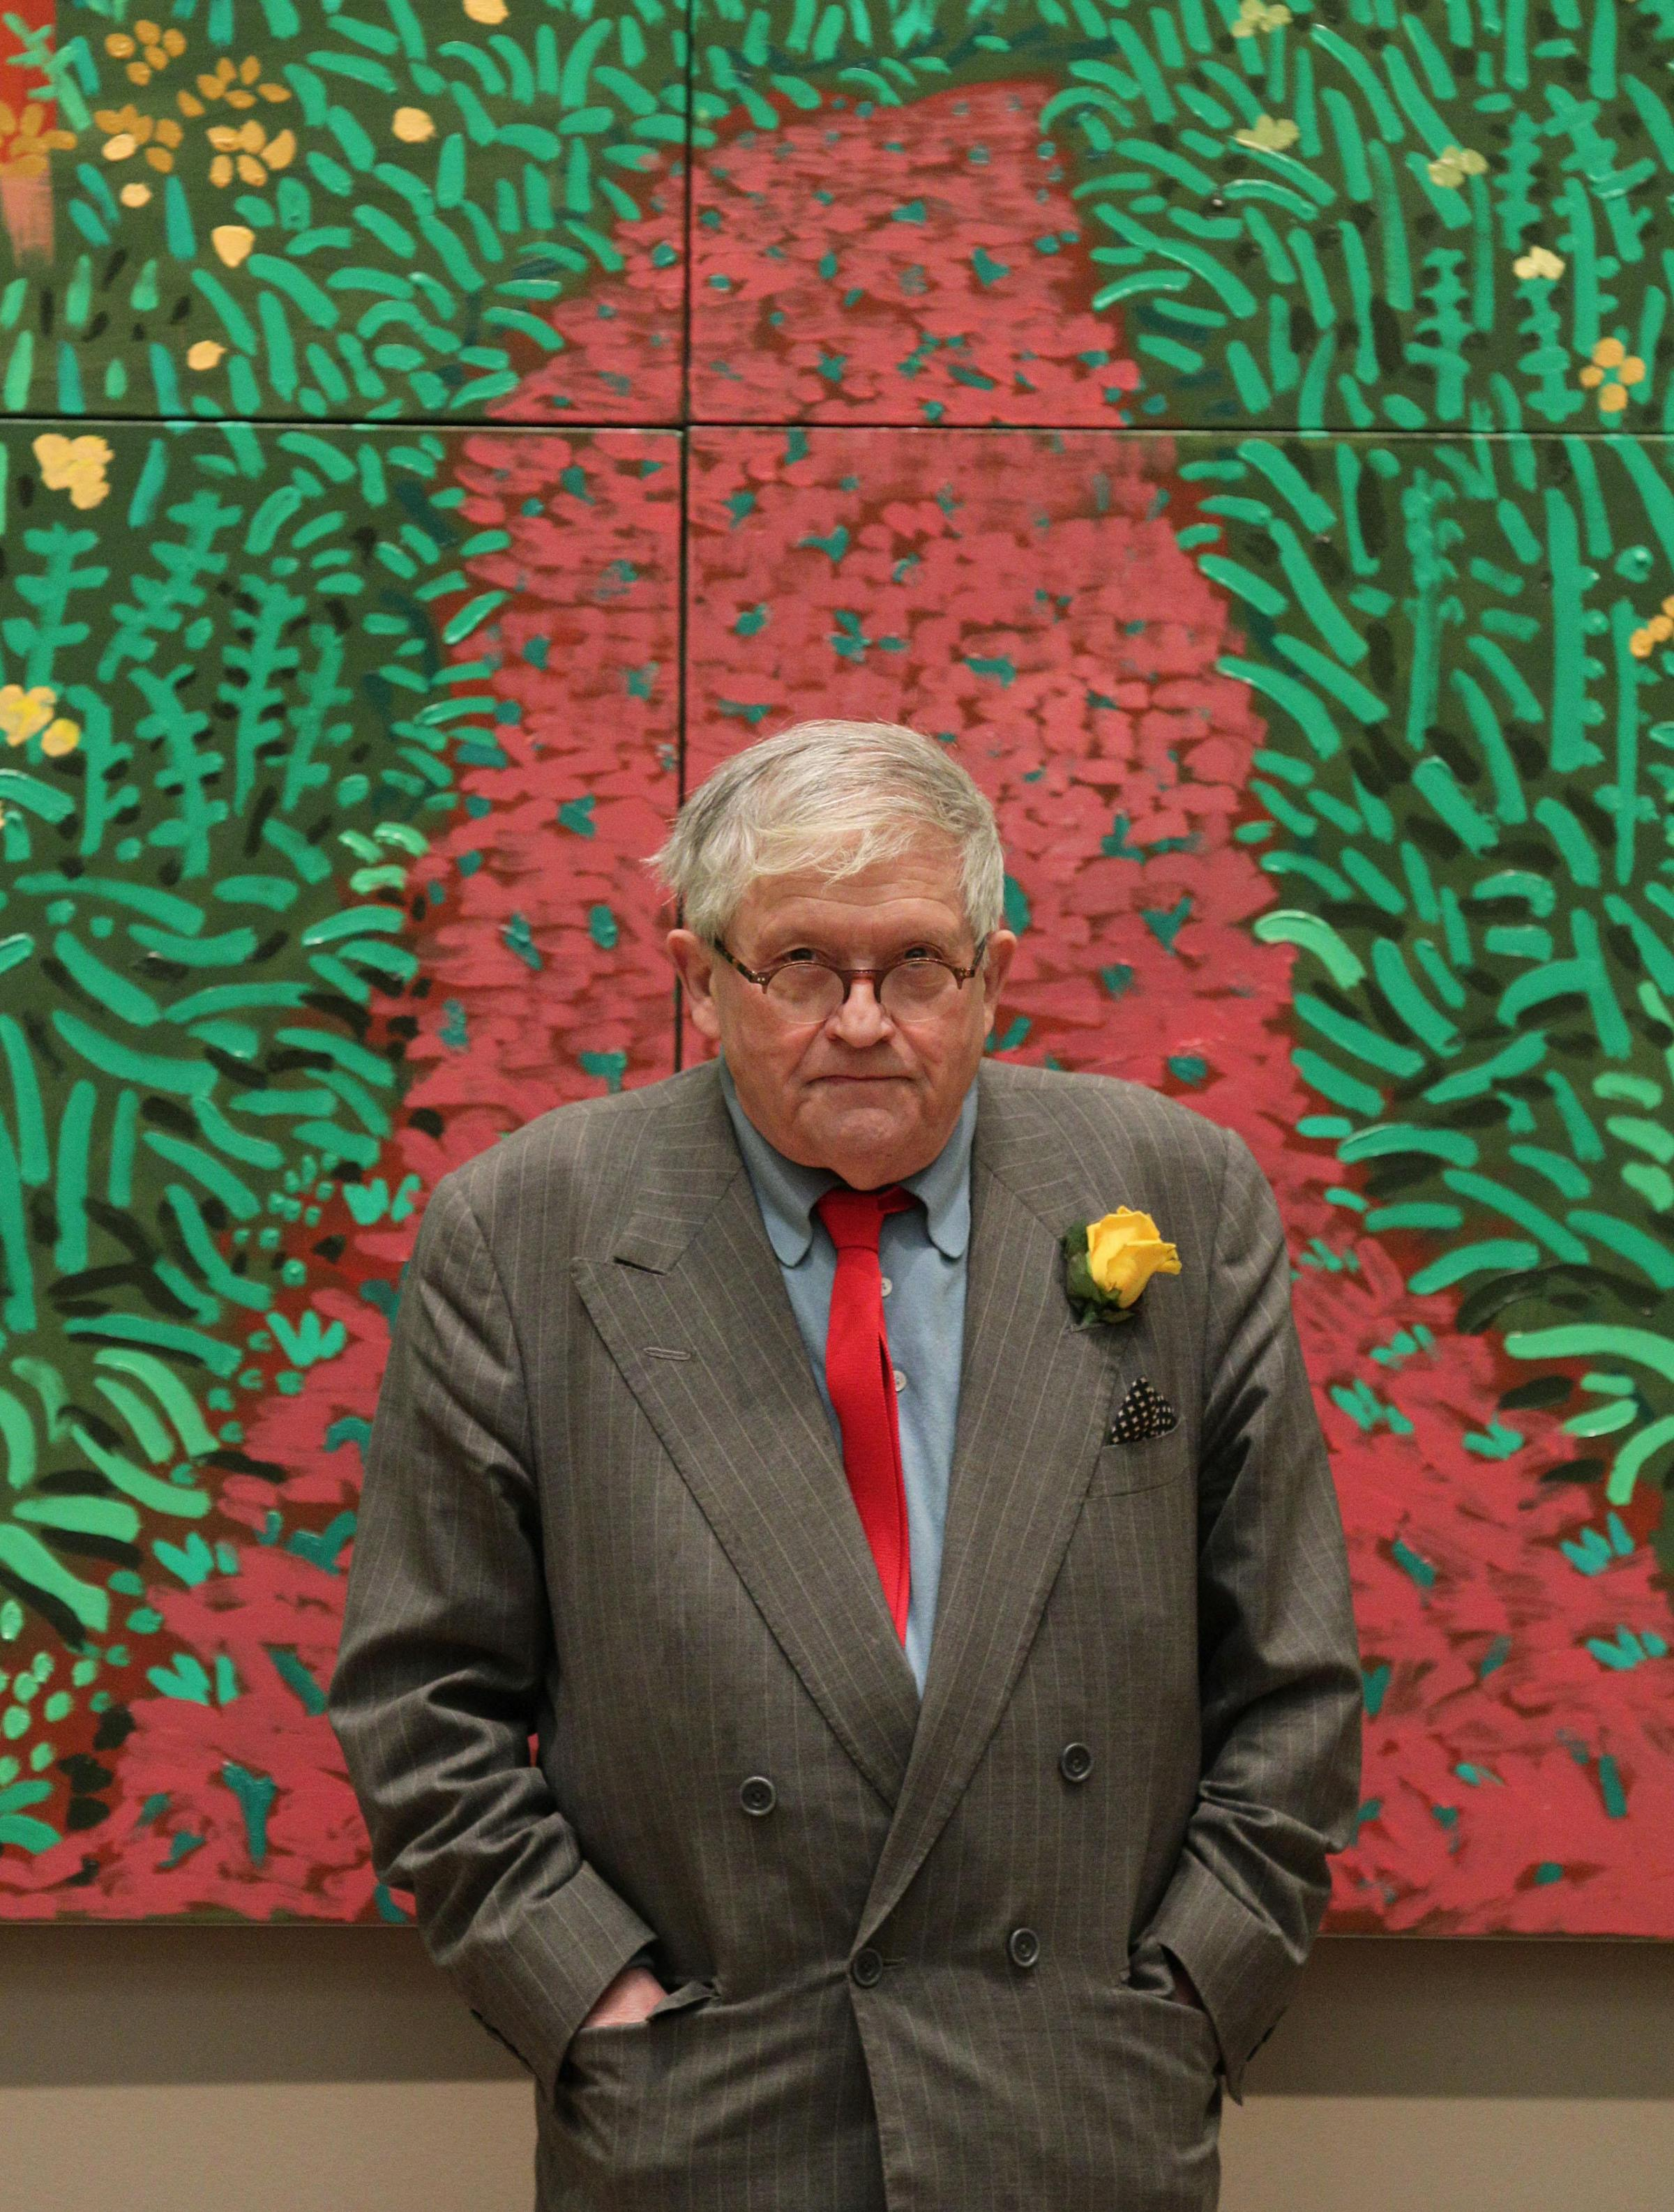 Hockney tells of his dismay at proposal to sell of Bradford's art treasures